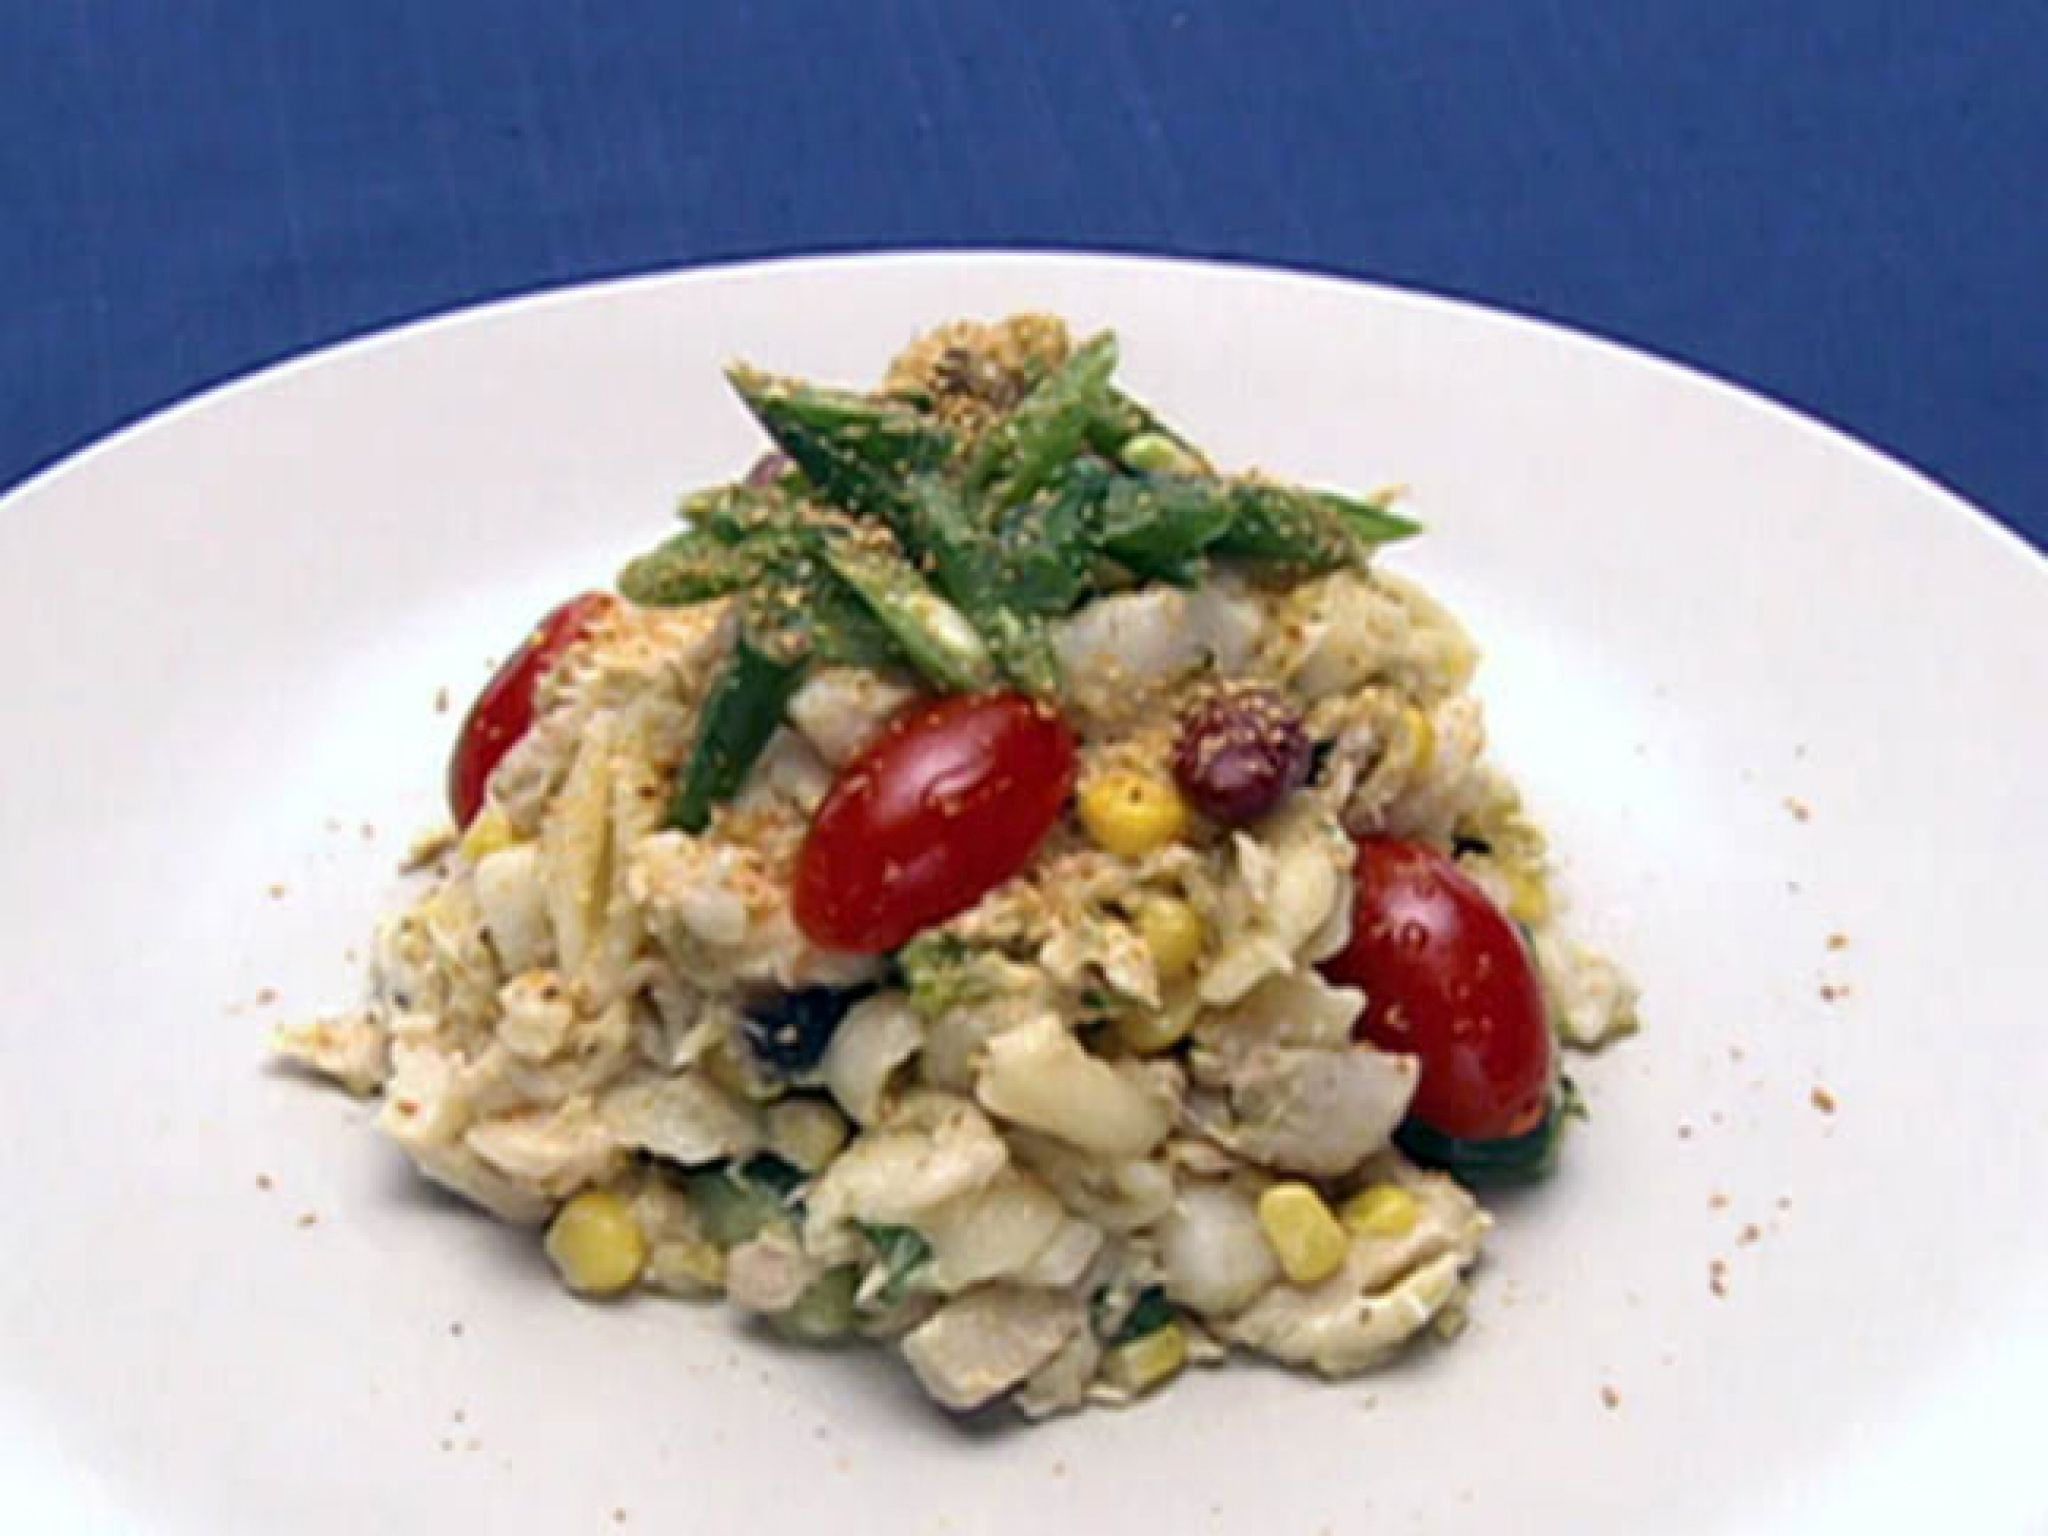 Food network recipes, Seafood salad ...